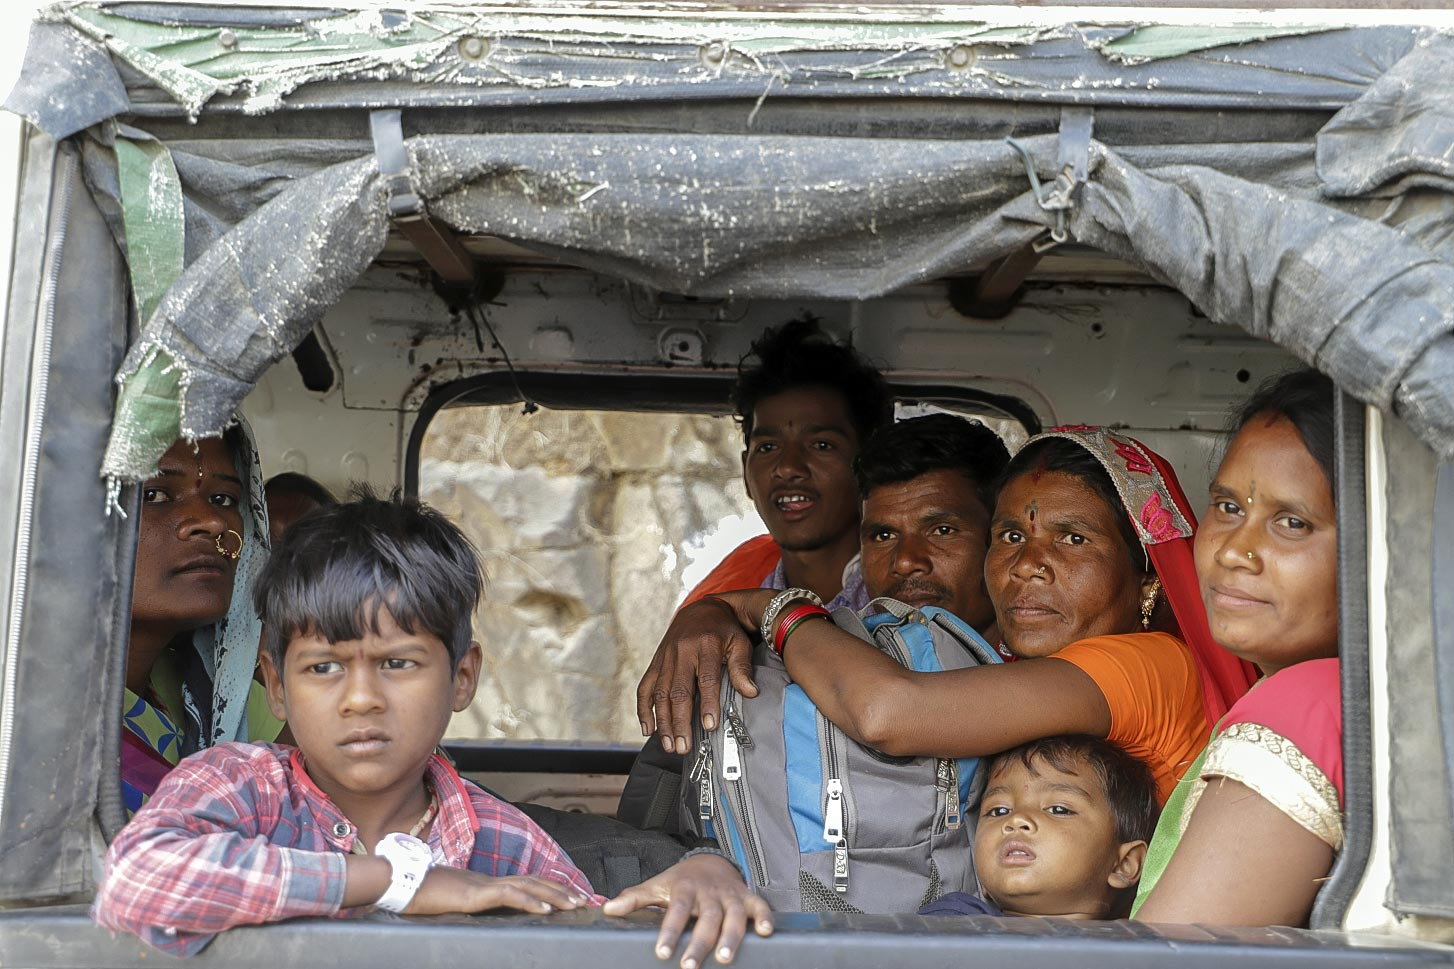 Indian economy: Pandemic recovery long way off